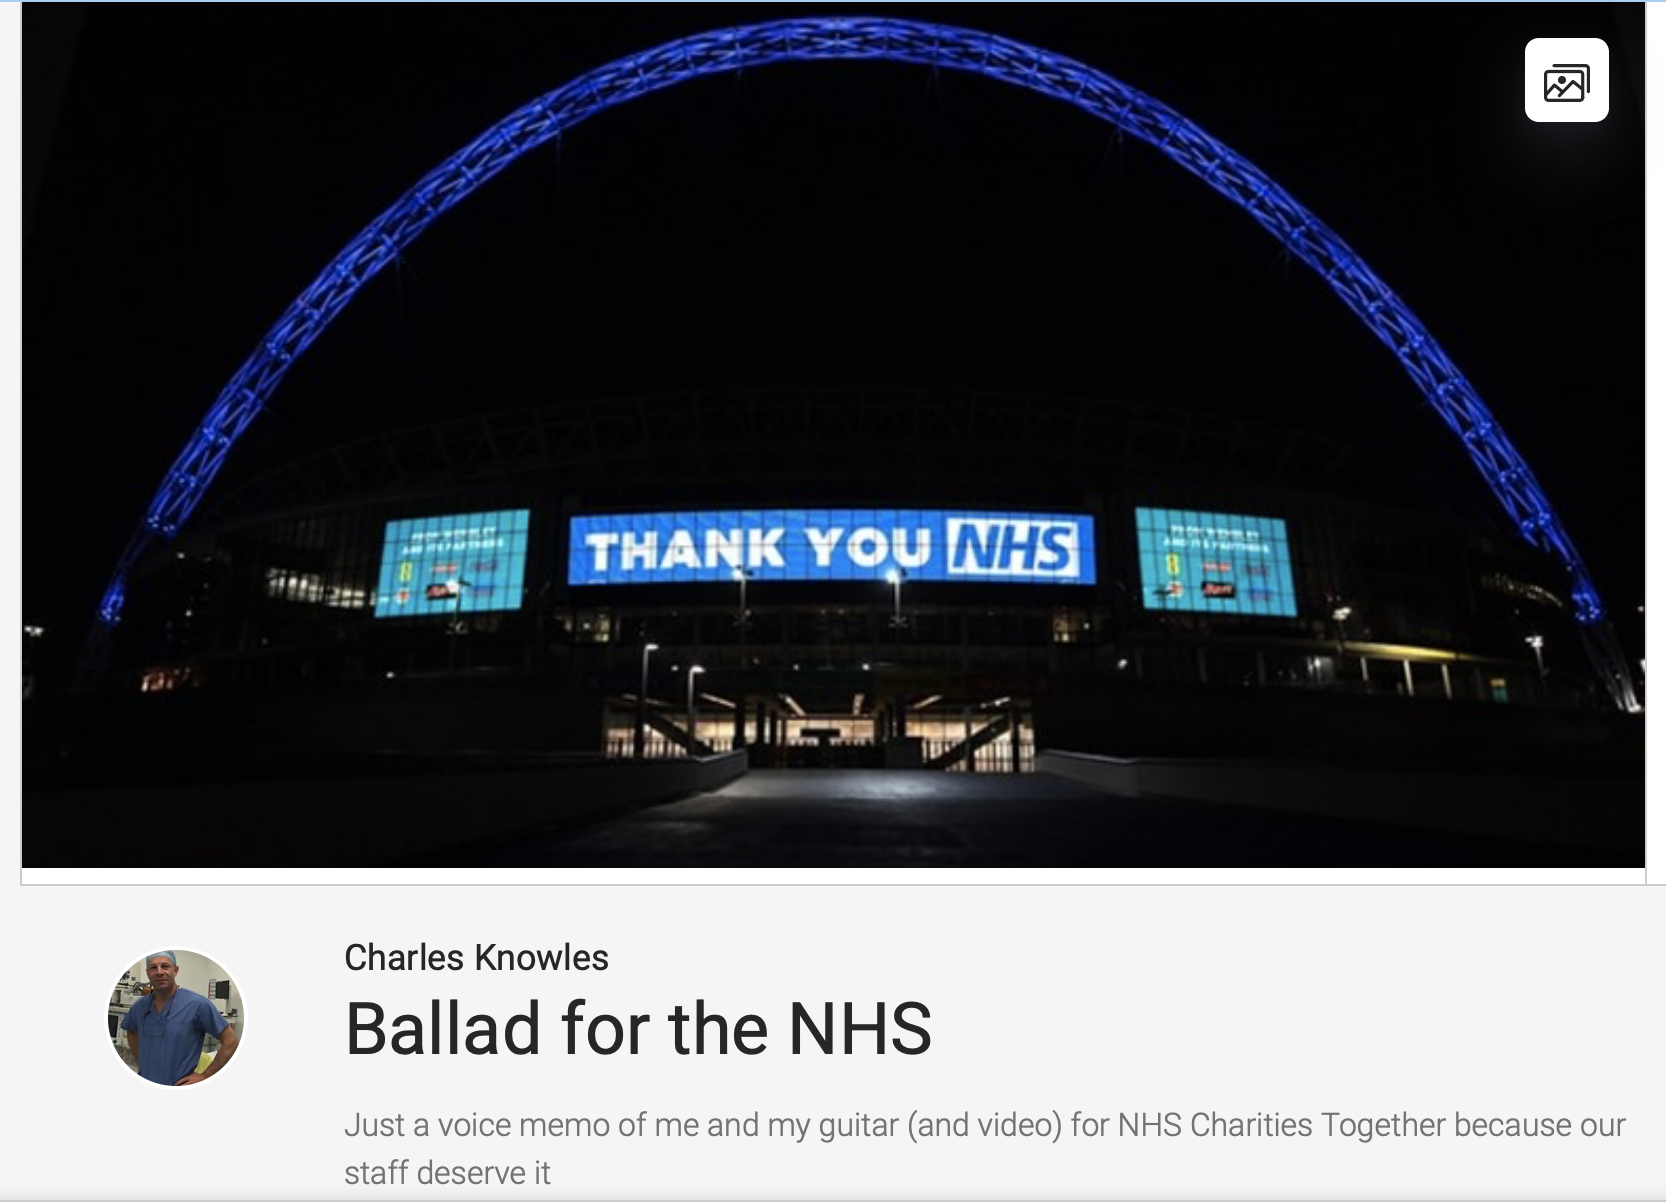 Ballard to the NHS featured image